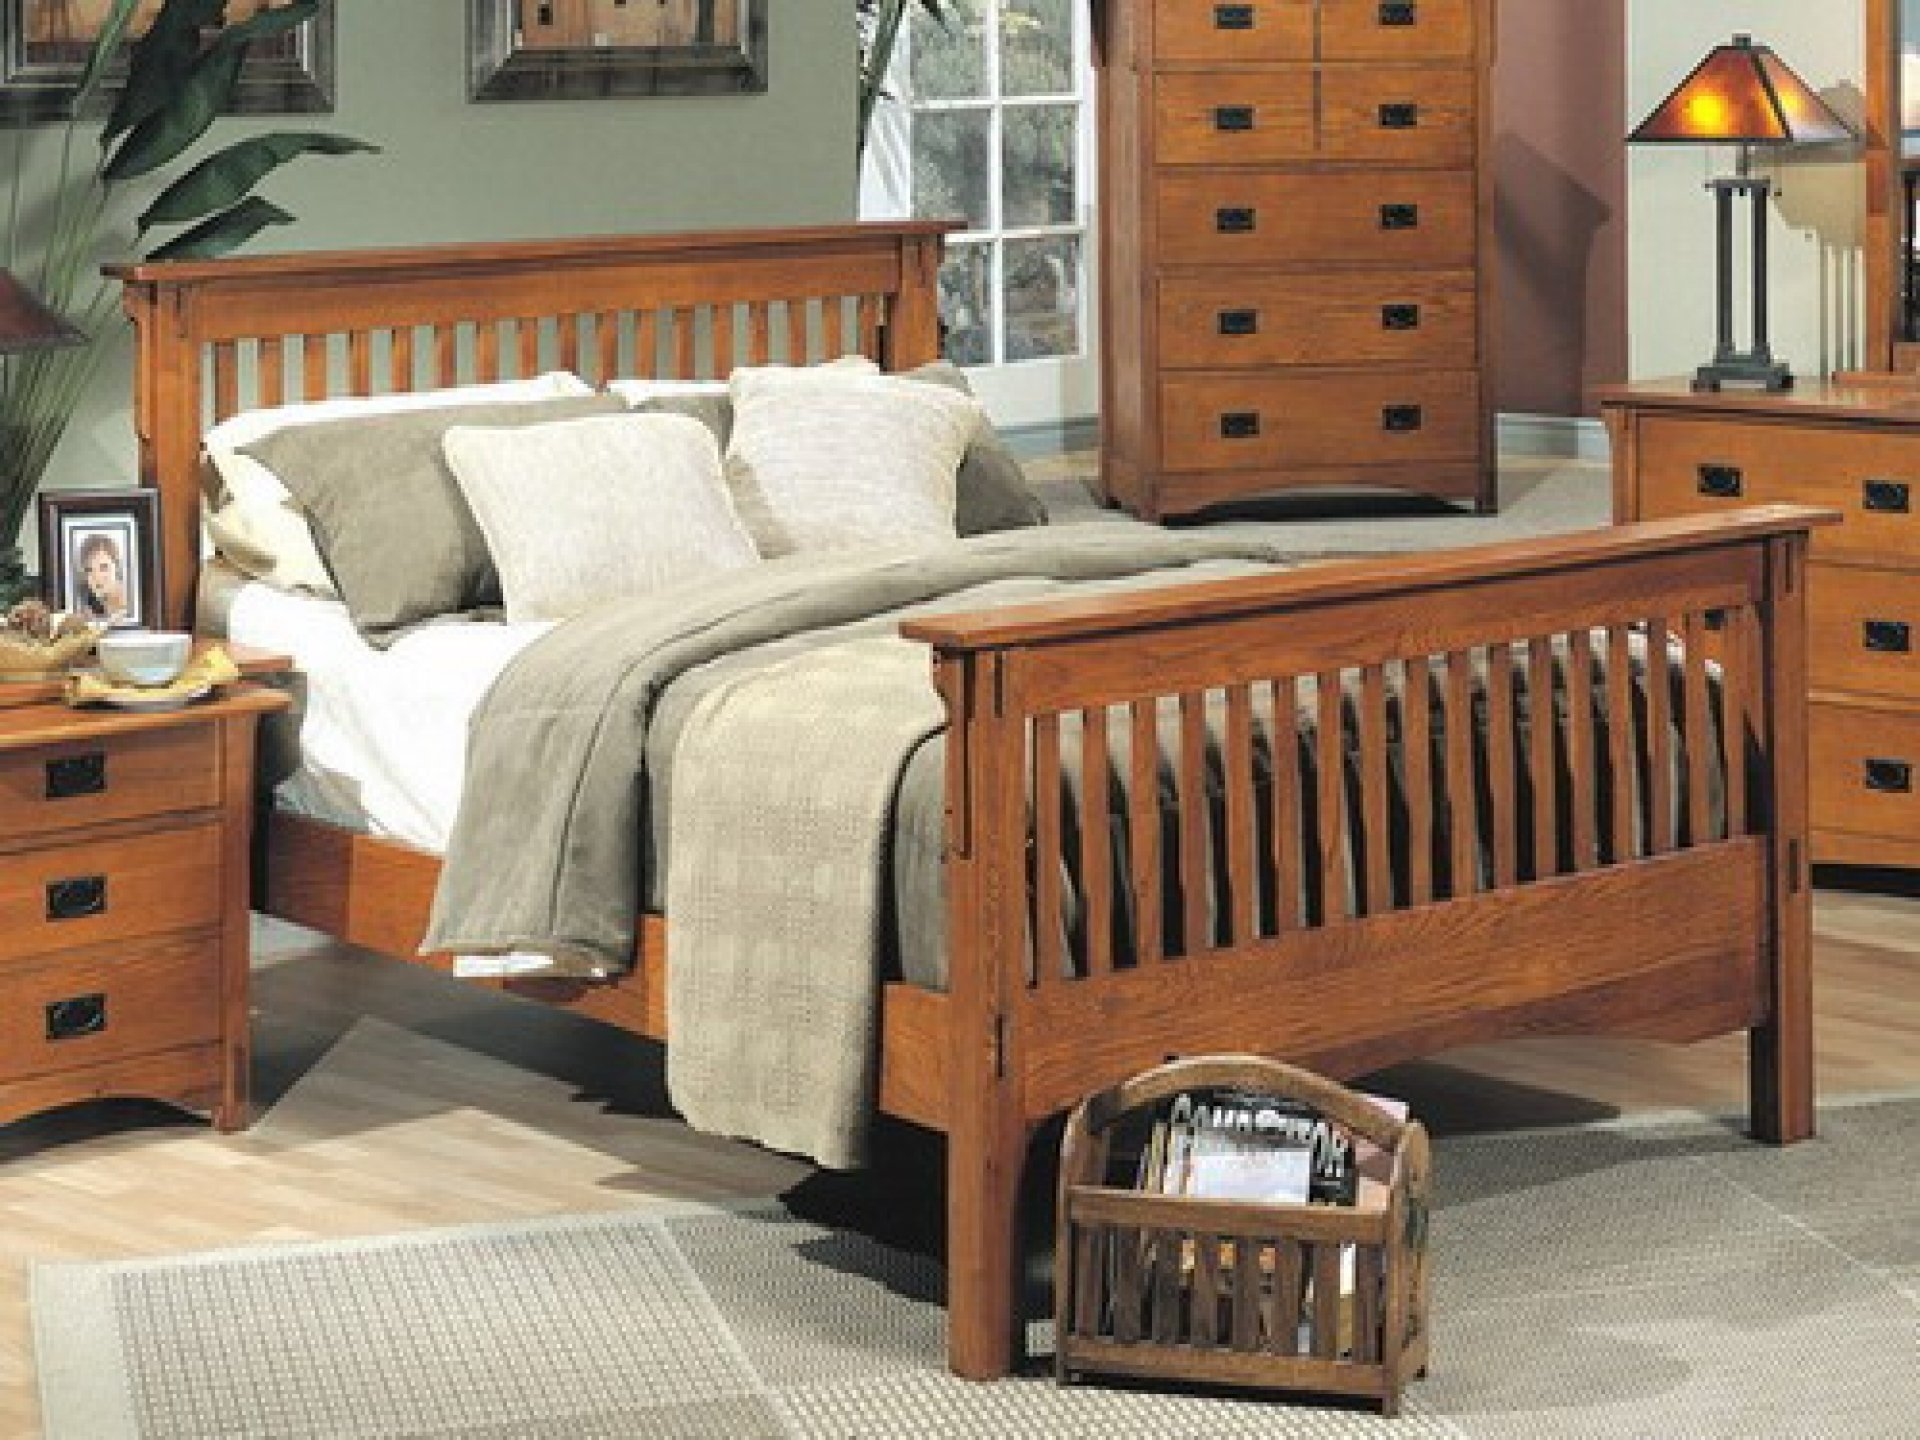 How to build a wooden bed frame 22 interesting ways for Mission style bed frame plans